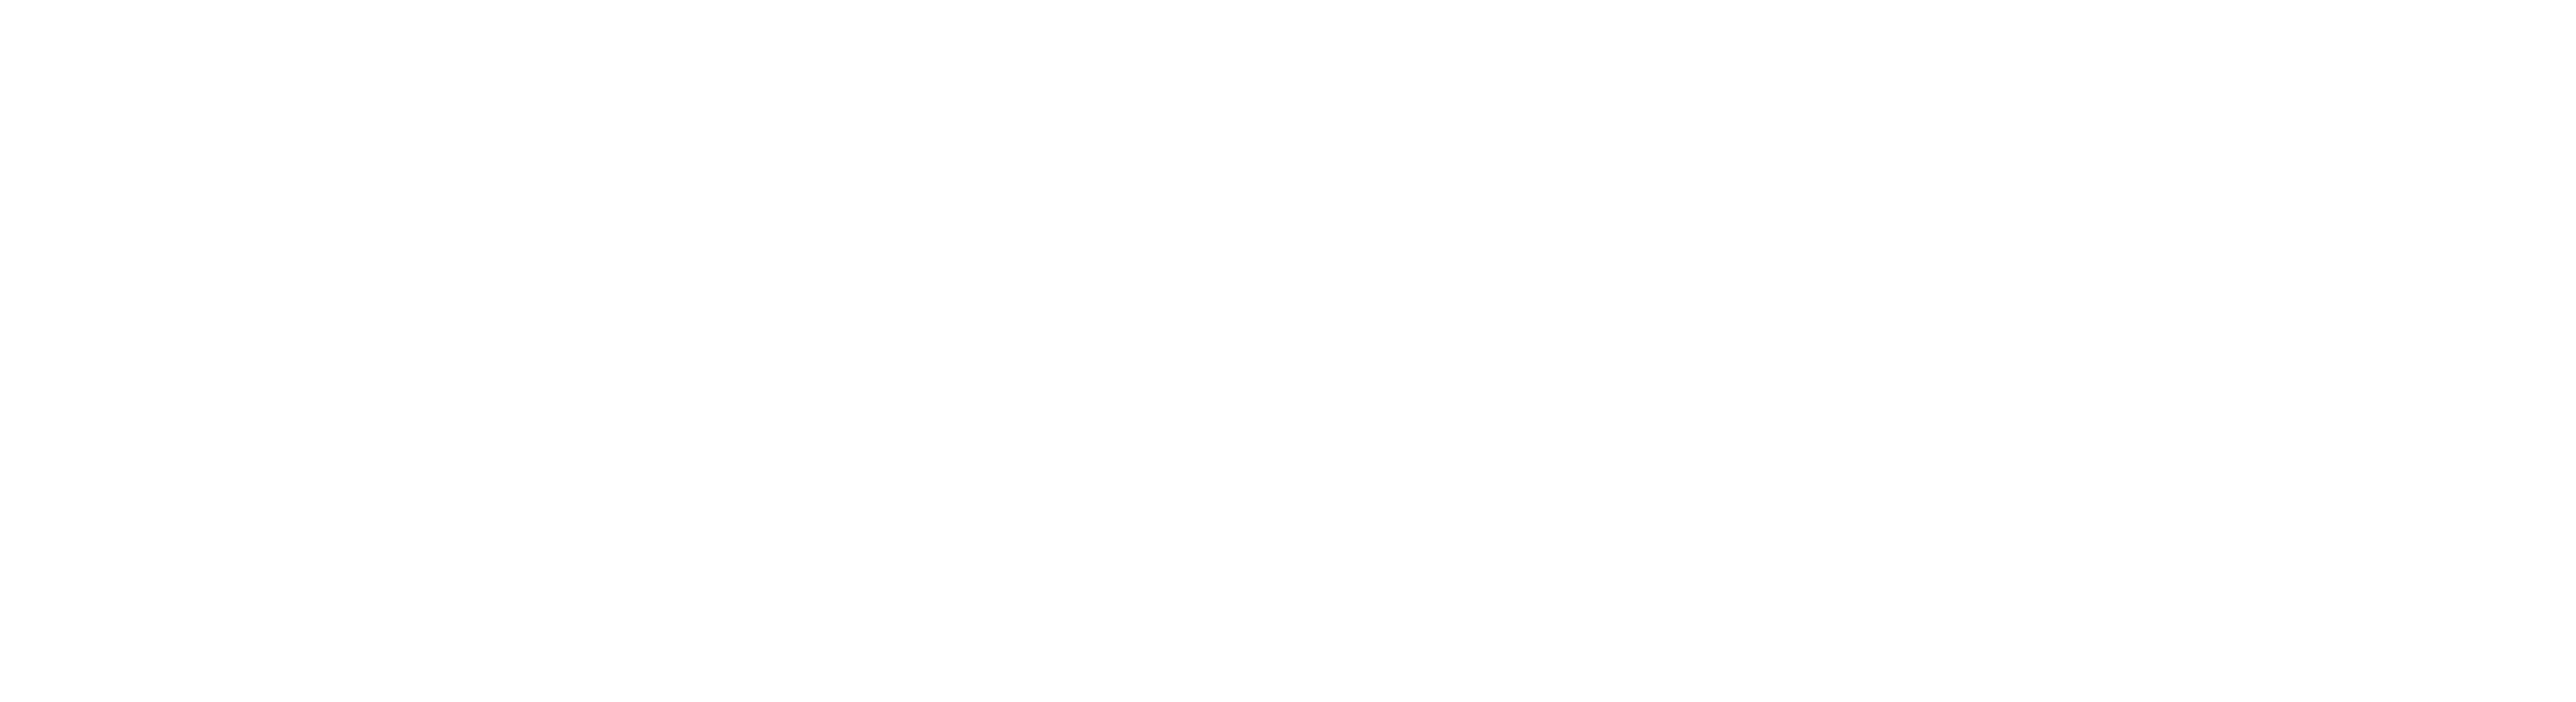 Dakota Family Services